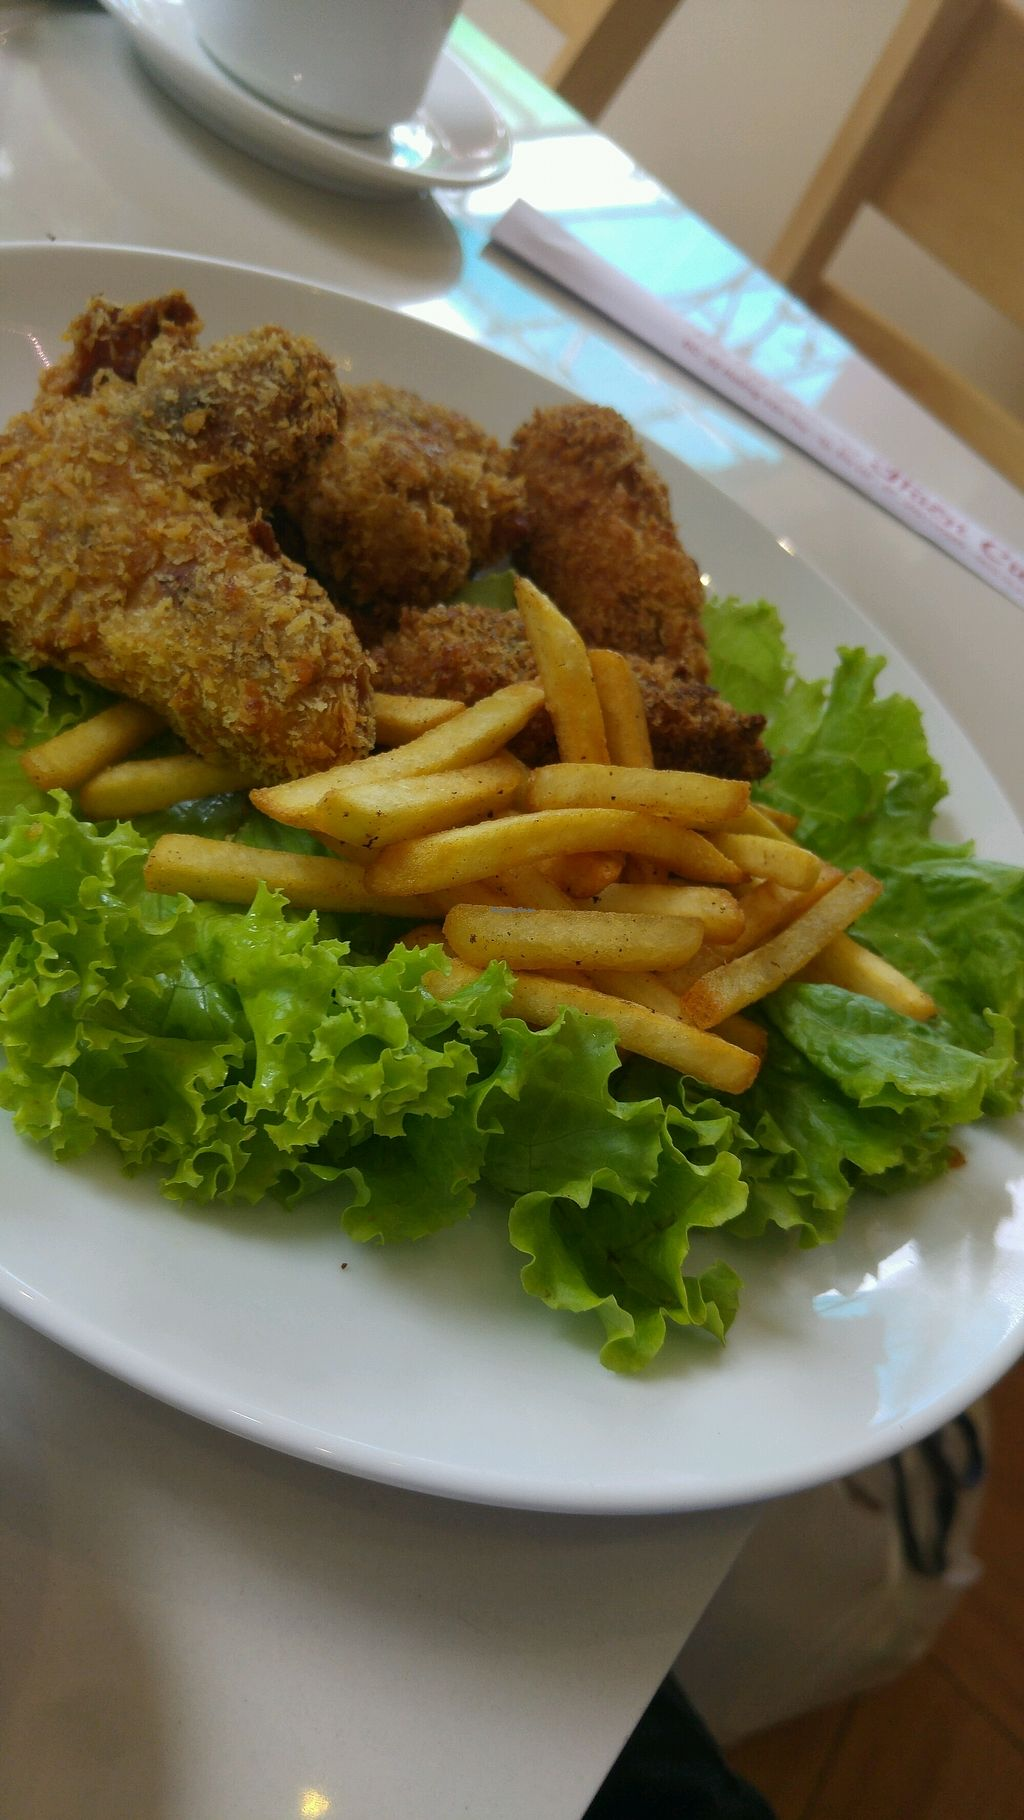 """Photo of Thien Cung - Loving Hut  by <a href=""""/members/profile/daveVN"""">daveVN</a> <br/>appetizer - """"kfc for vegetarians"""" <br/> September 19, 2017  - <a href='/contact/abuse/image/100280/305999'>Report</a>"""